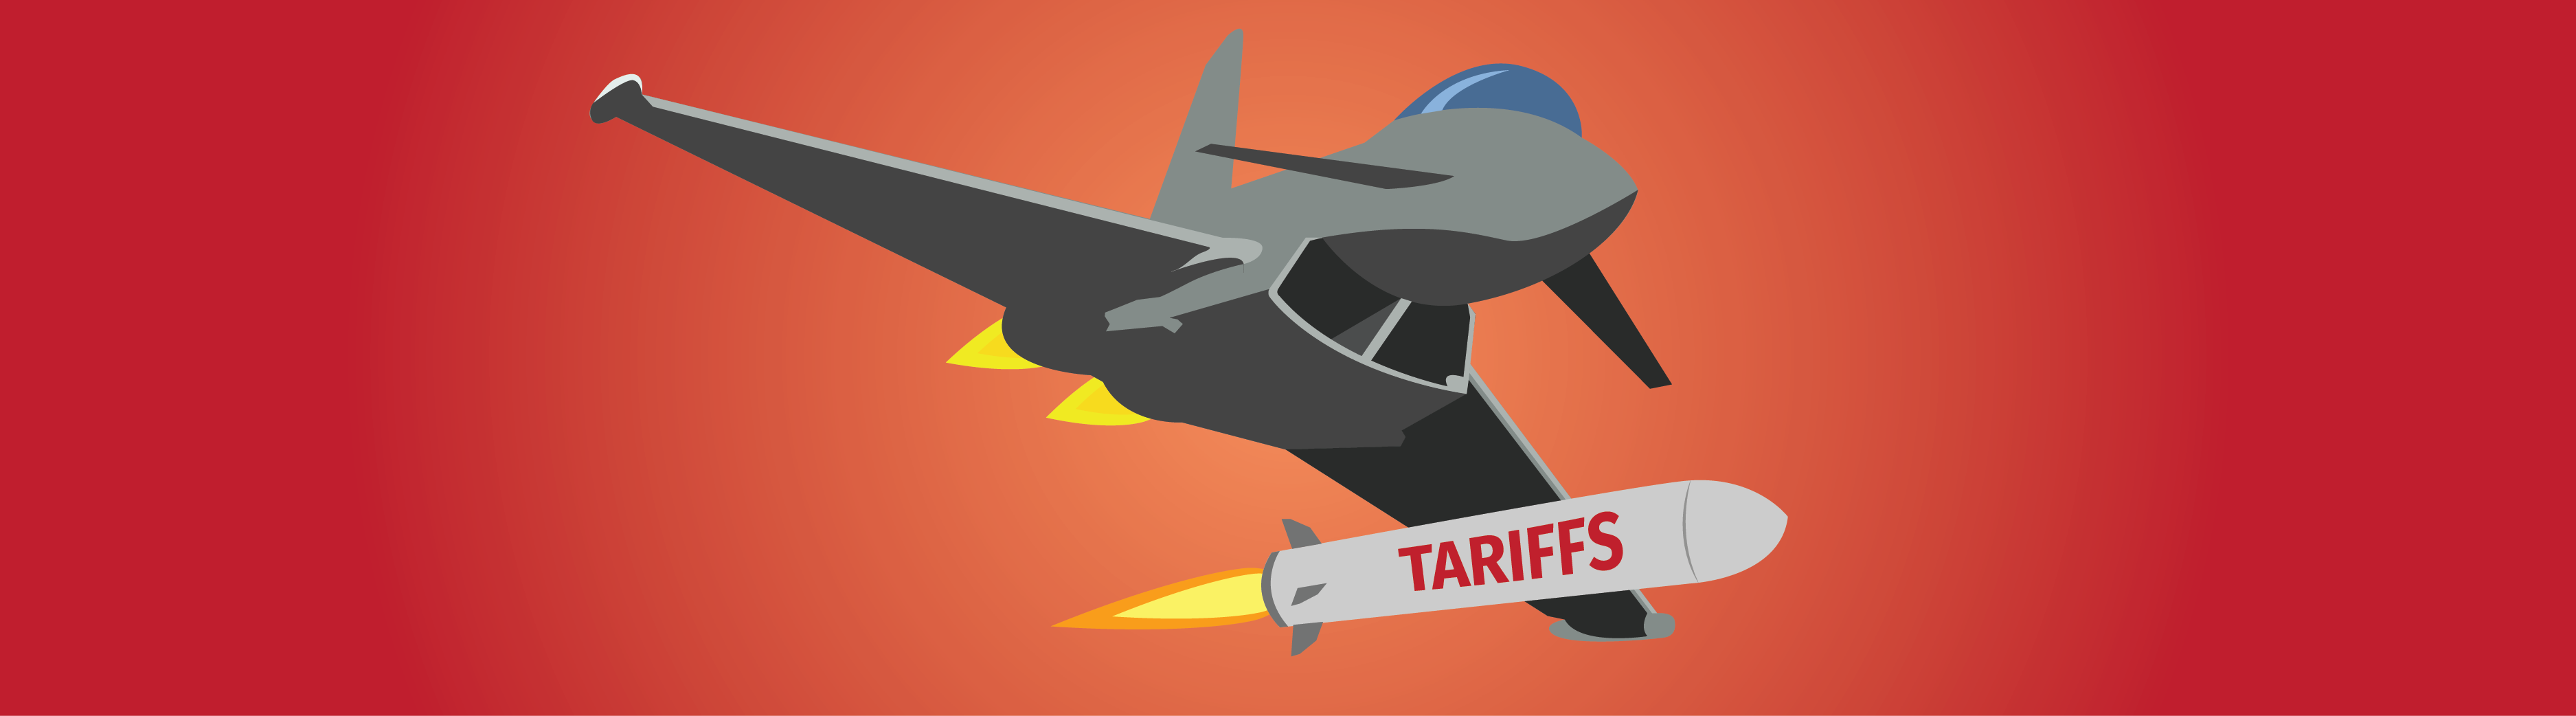 Protectionism, tariffs and trade wars